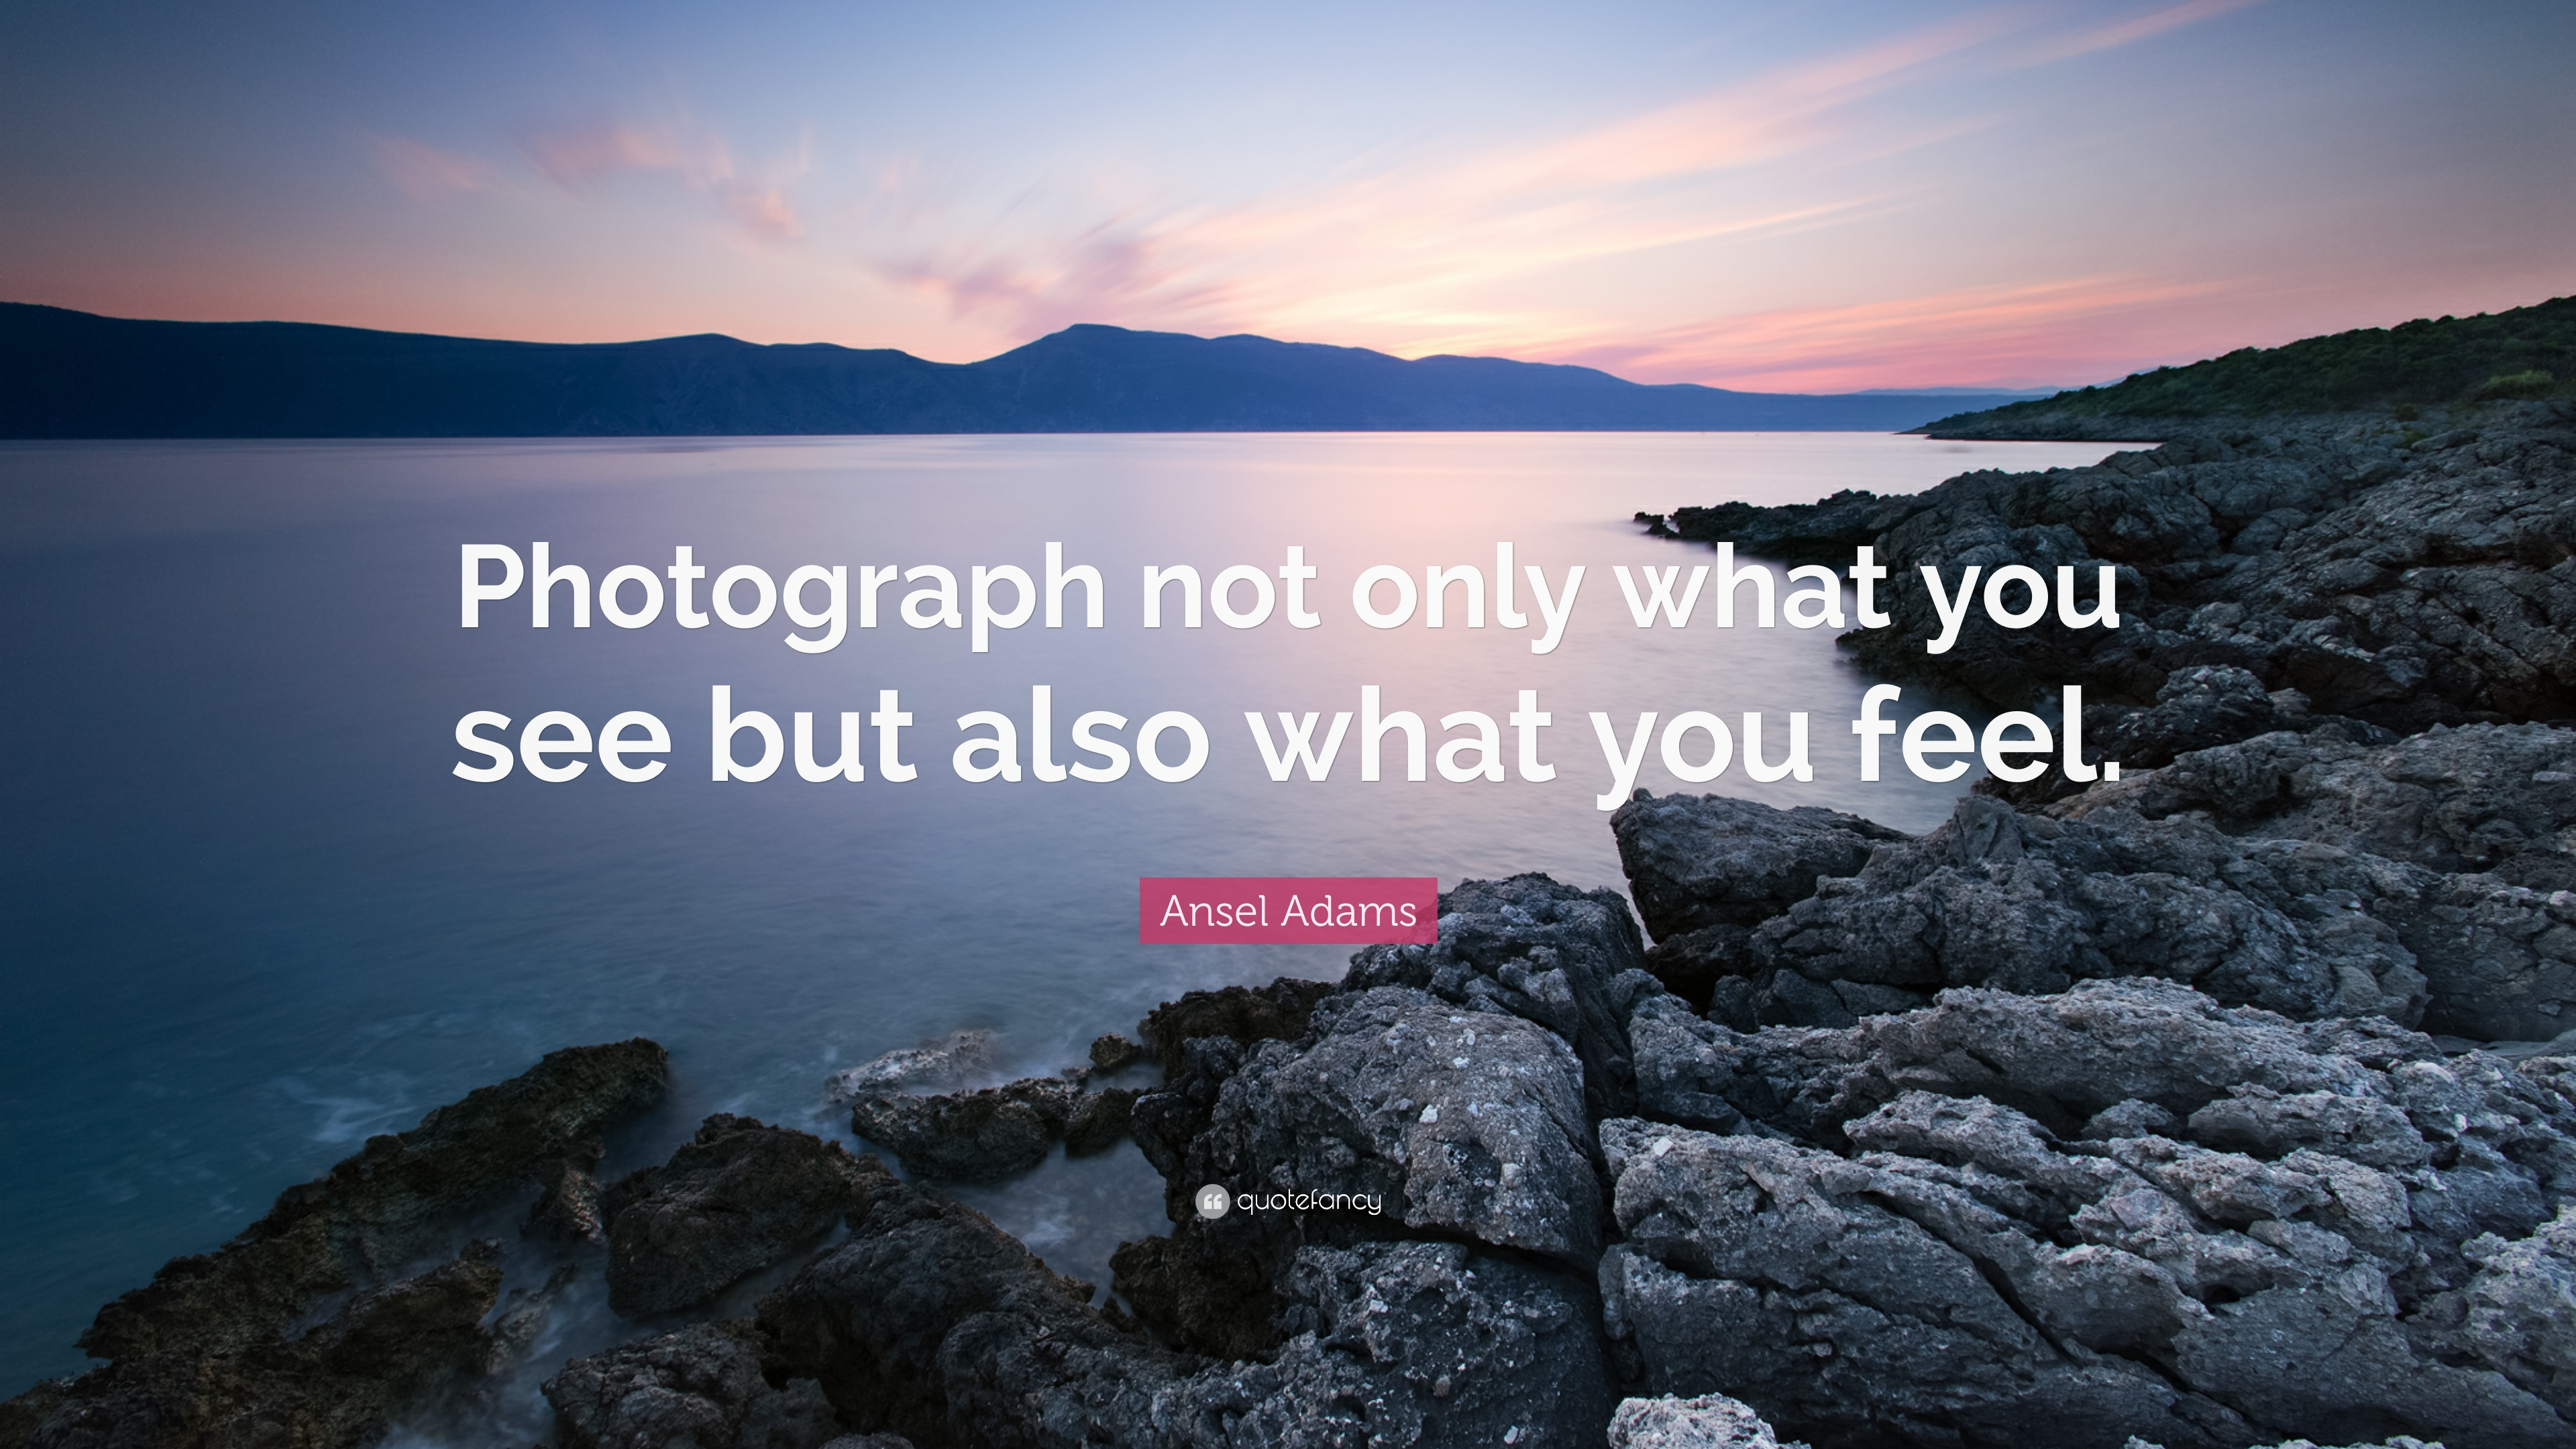 Ansel Adams Quotes 5